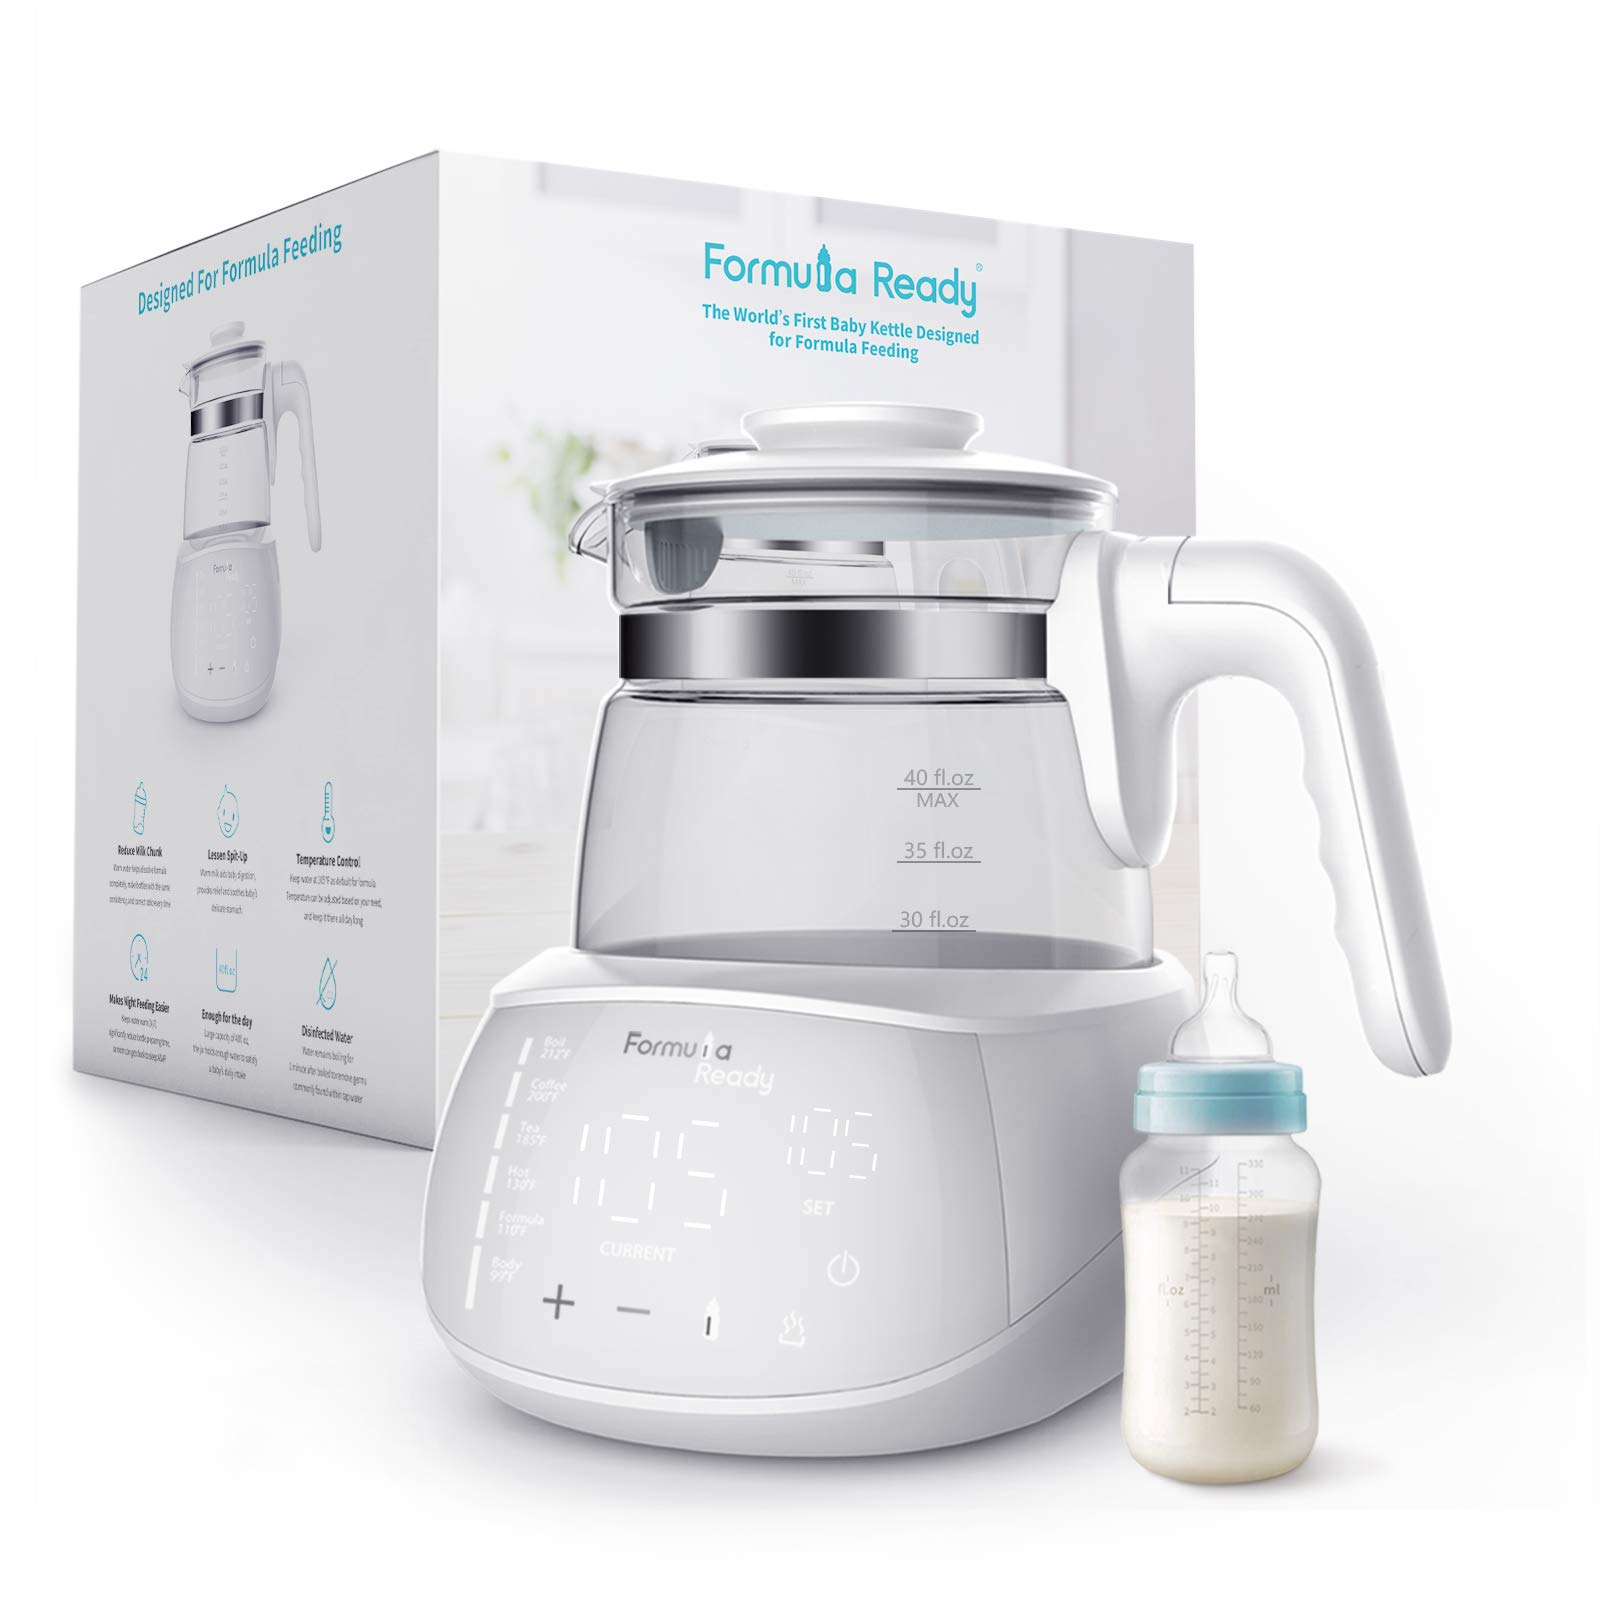 Formula Ready Baby Water Kettle- One Button Boil Cool Down and Keep Warm at Perfect Baby Bottle Temperature 24/7 - Dispense Warm Water Instantly- Replace Traditional Baby Bottle Warmer